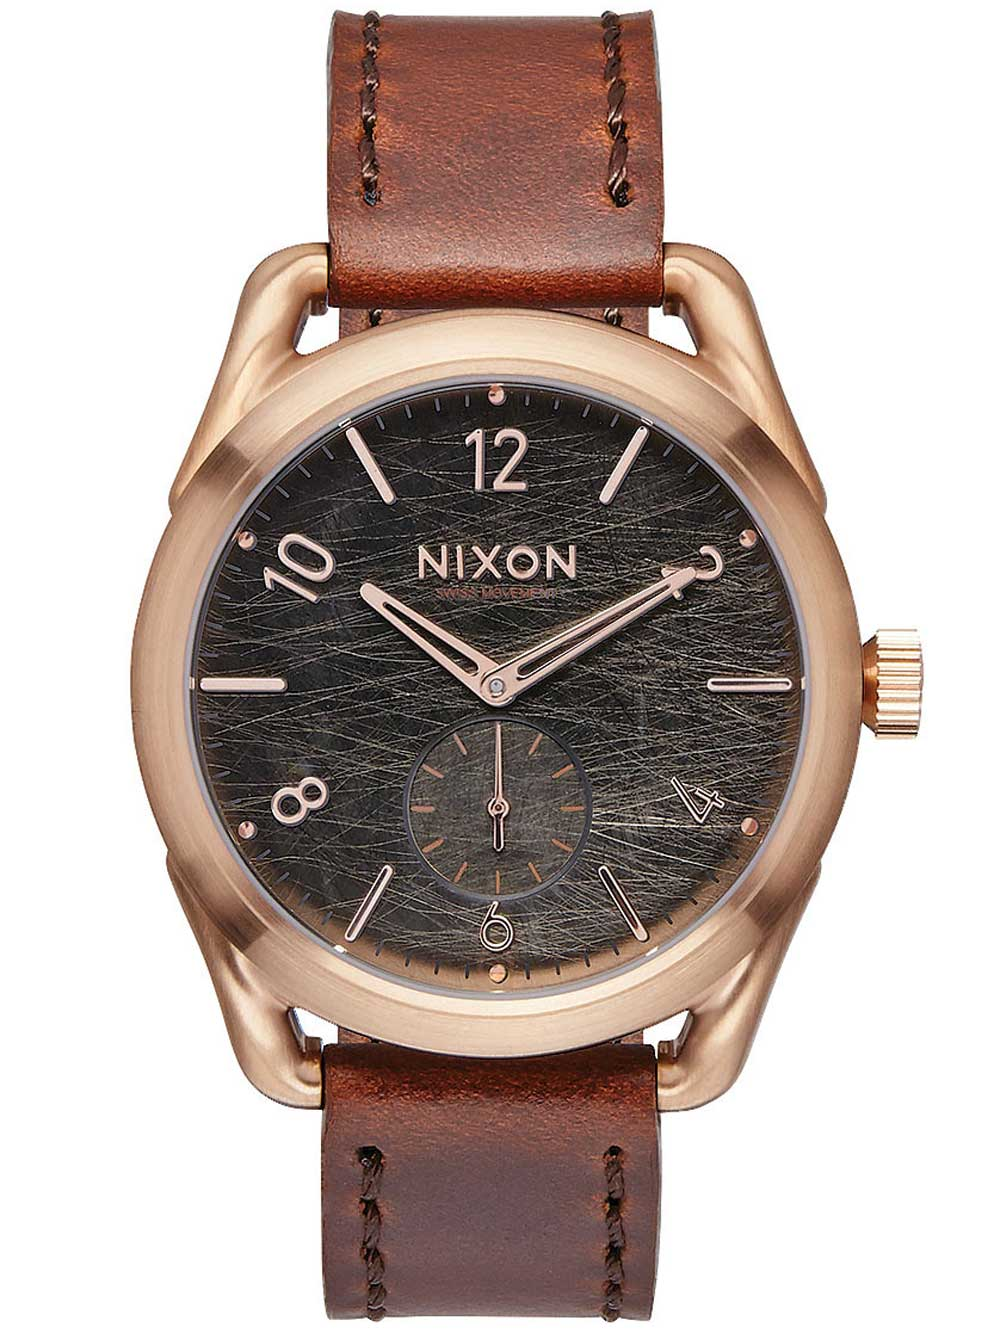 NIXON A459-1890 C39 Leather Rose Gold Brown 39mm 10ATM